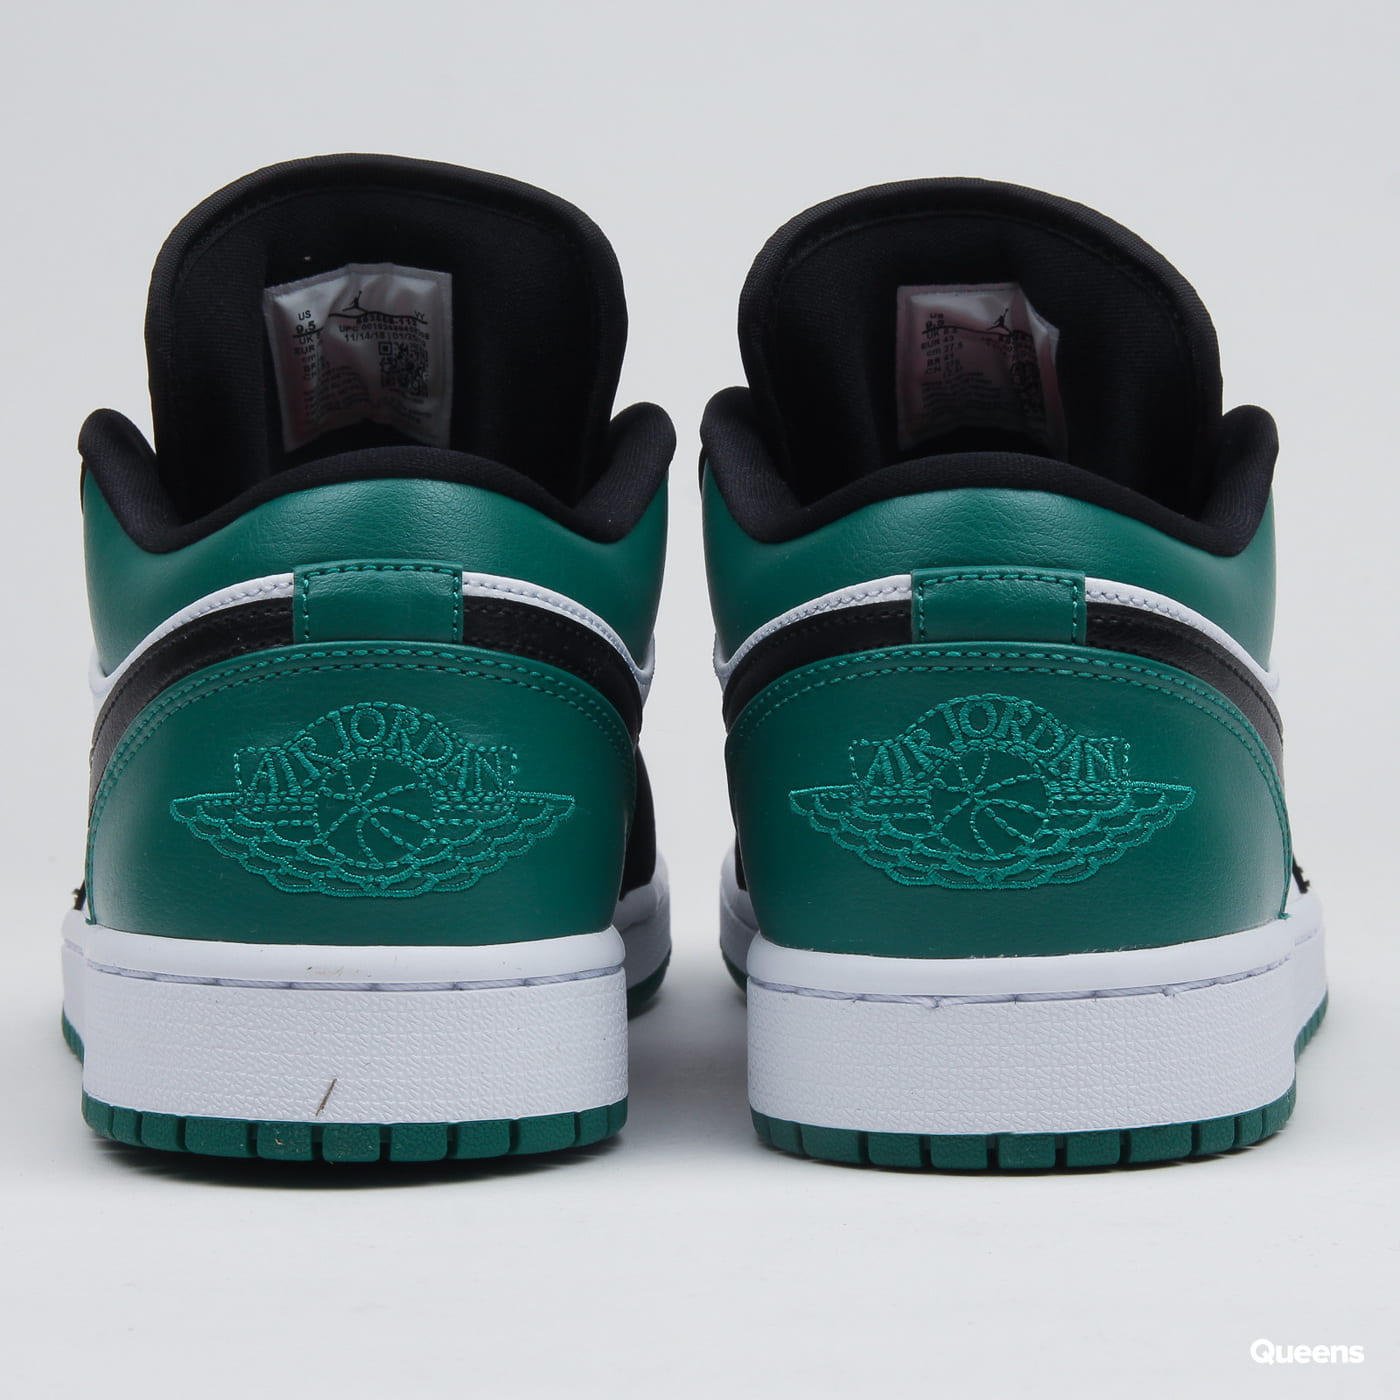 74051019fb5f64 Zoom in Zoom in Zoom in Zoom in Zoom in. Jordan Air Jordan 1 Low white    black - mystic green